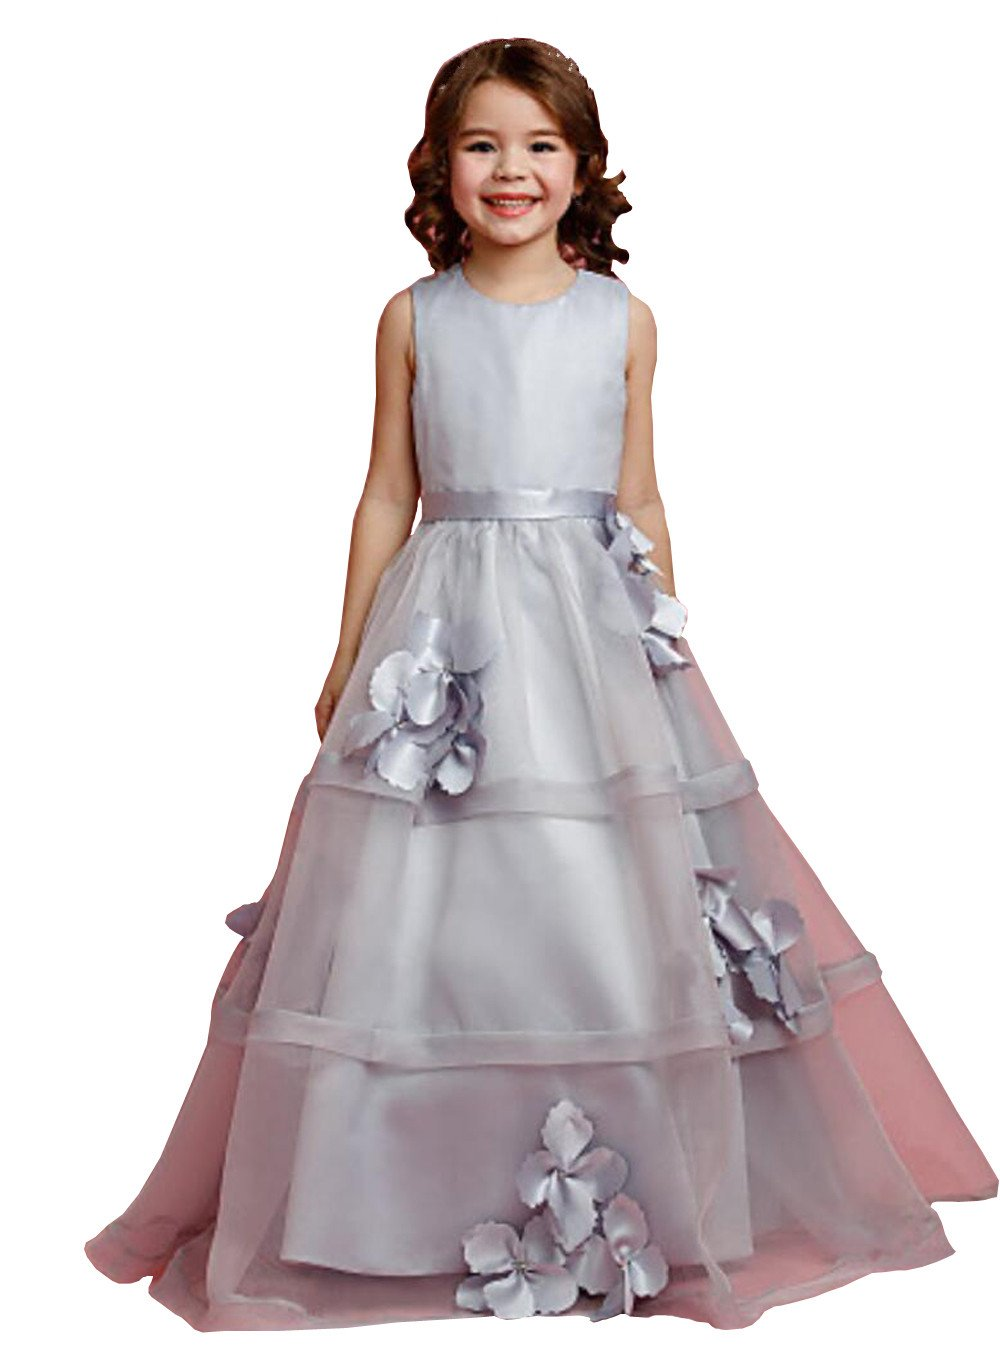 Banfvting Cute Flower Girl Dresses Grey Organza Gown Teens Formal Wear A Line Sleeveless Toddler Pageant Dress (2)